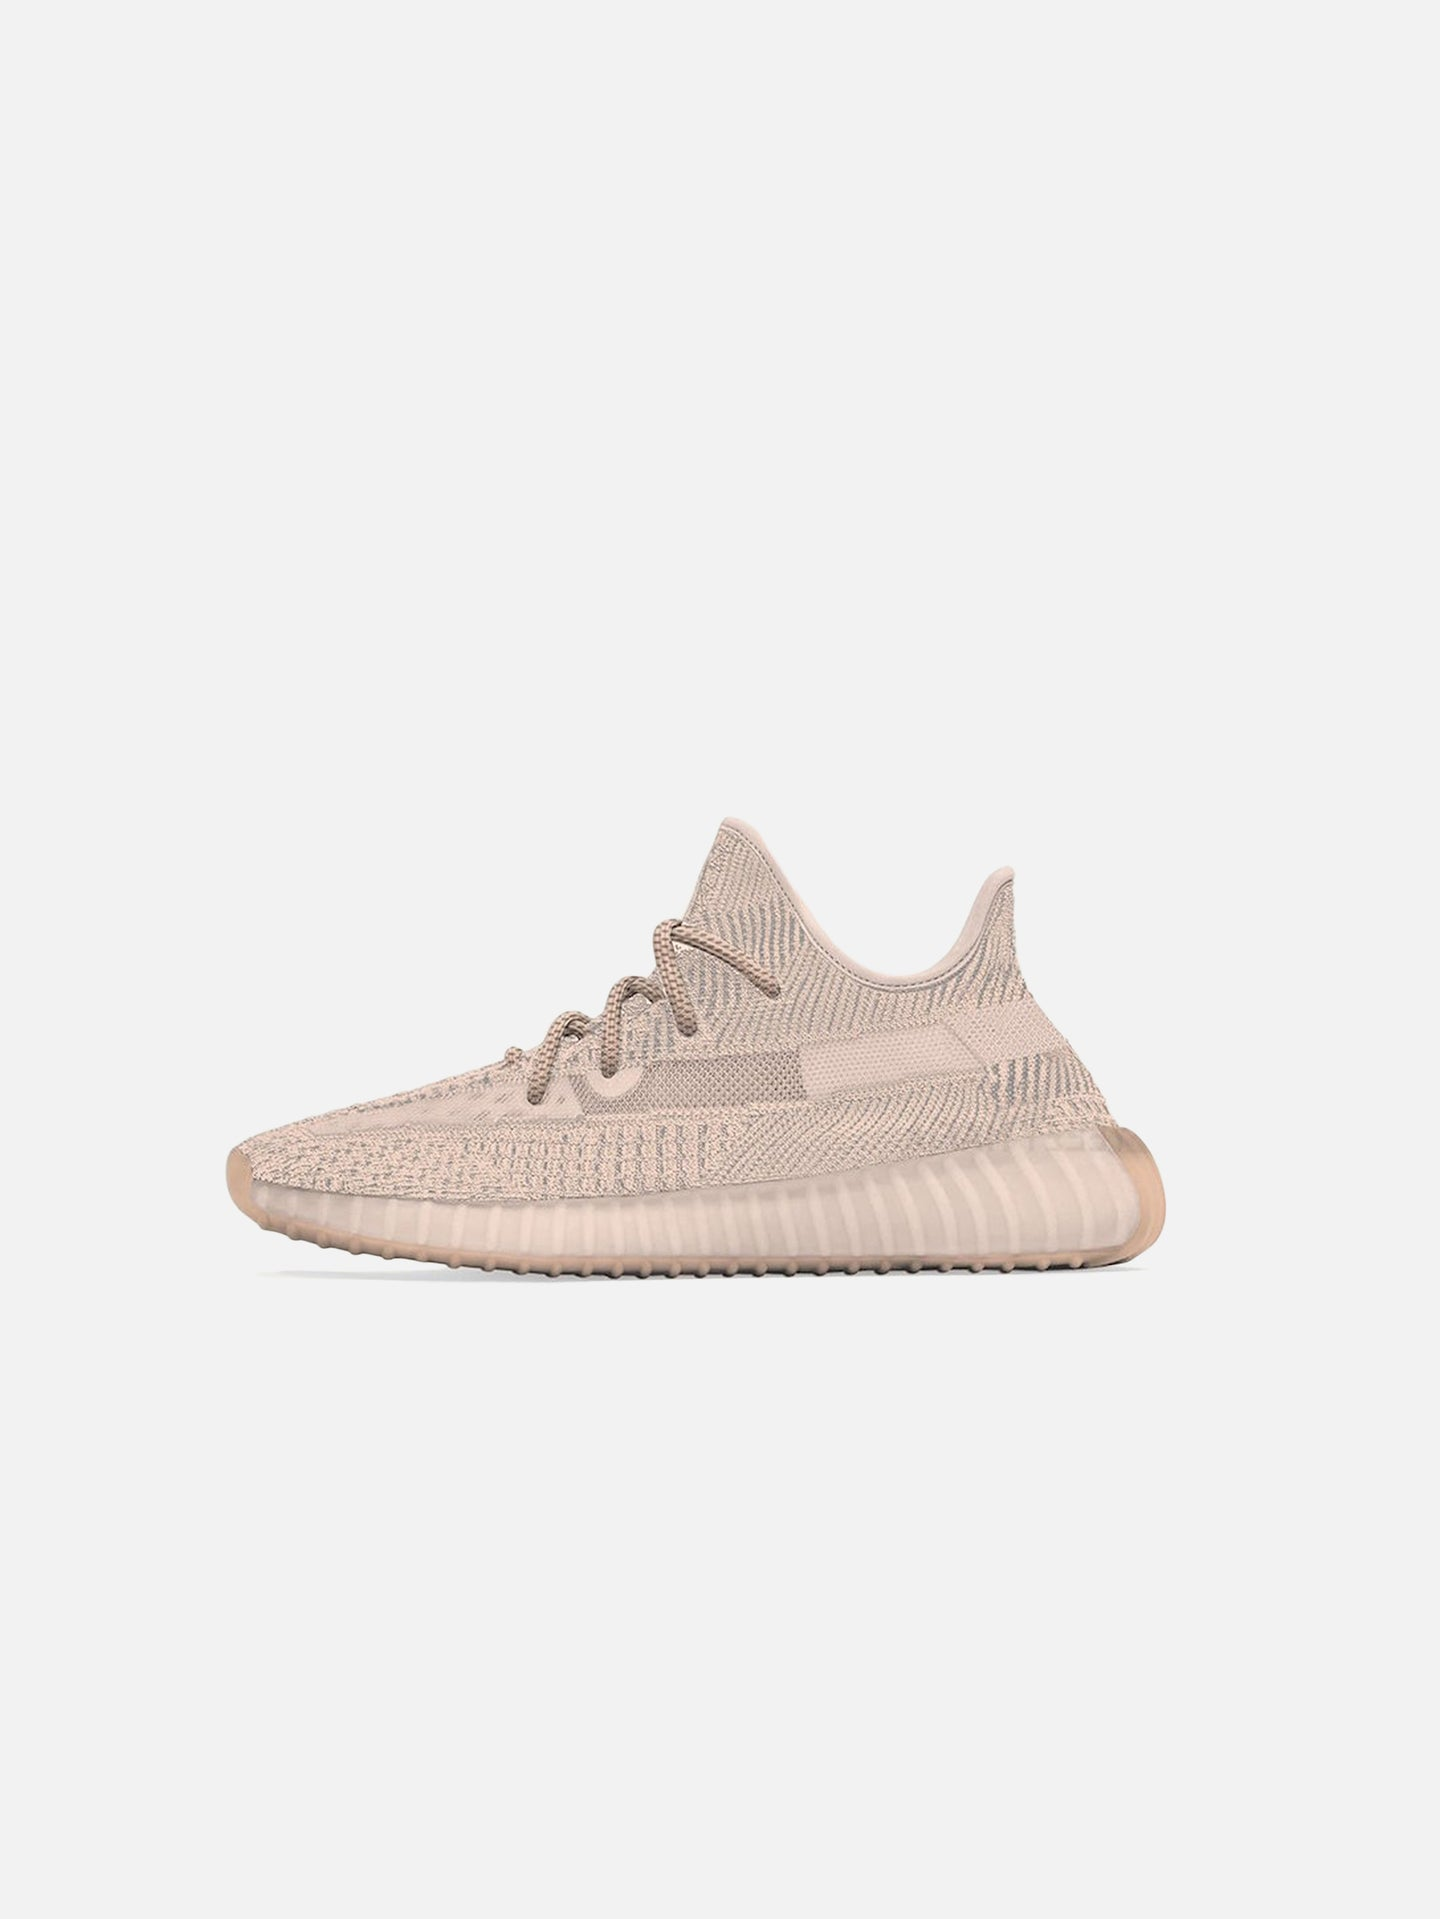 YEEZY BOOST 350 V2: SYNTH